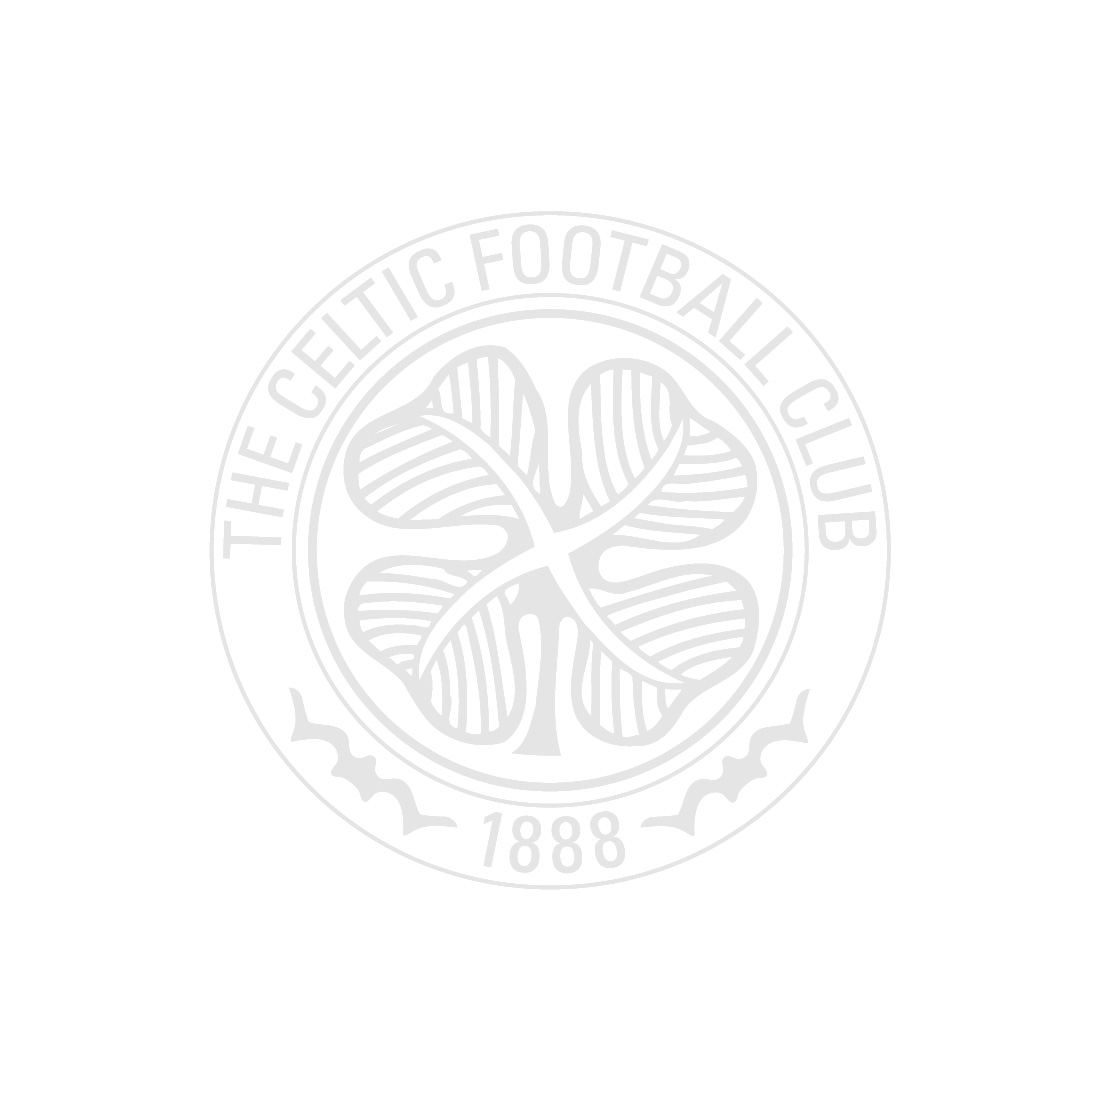 Celtic Hooped Crest Magnet